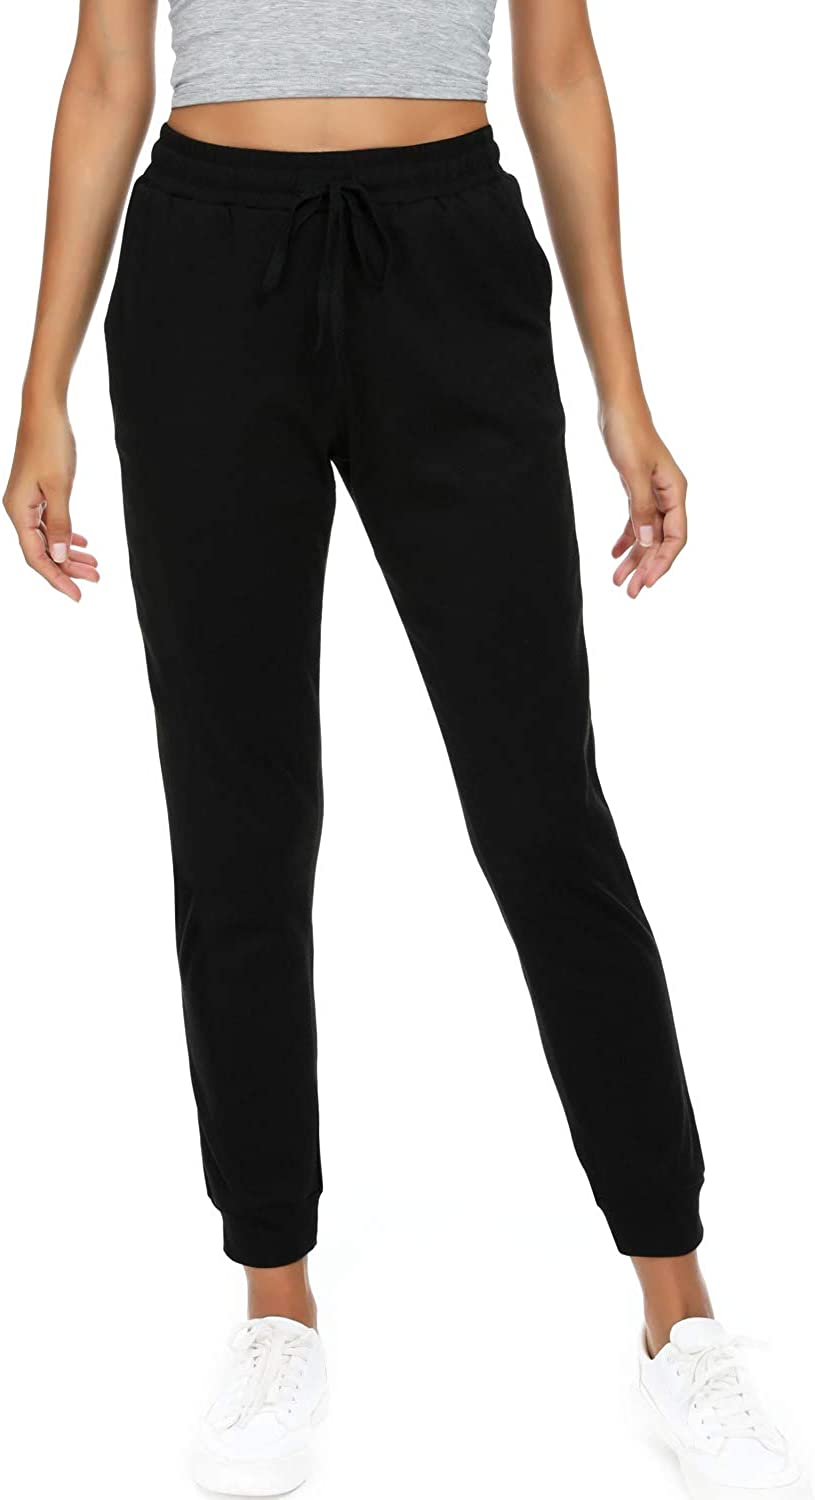 HAOMEILI Women's Joggers Pants Fresno Mall Sweatpants Active Limited time cheap sale Cotton Tapered